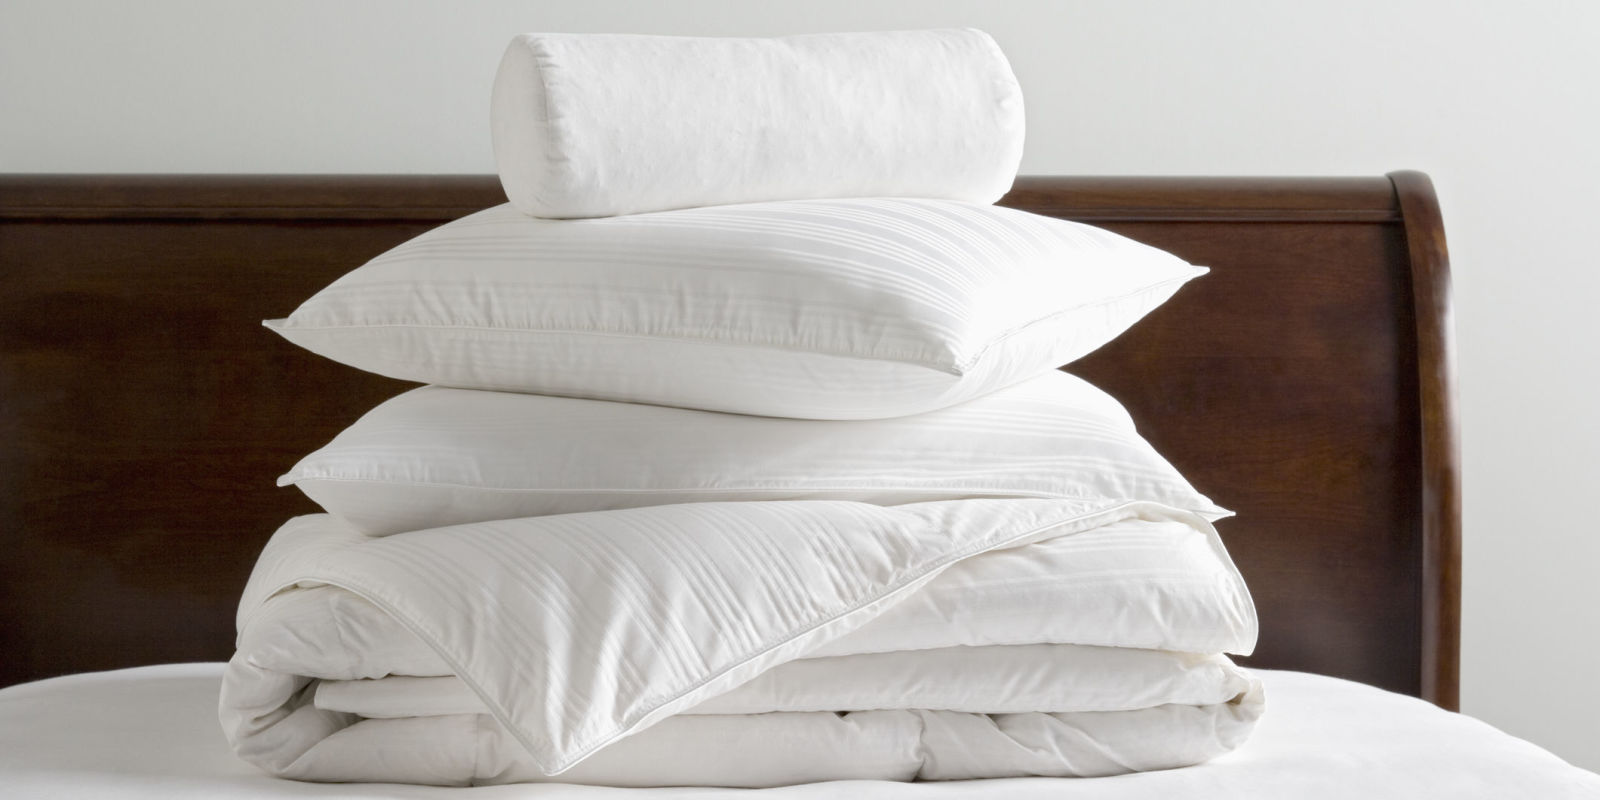 The Best Pillows to Help You Sleep Like a Baby